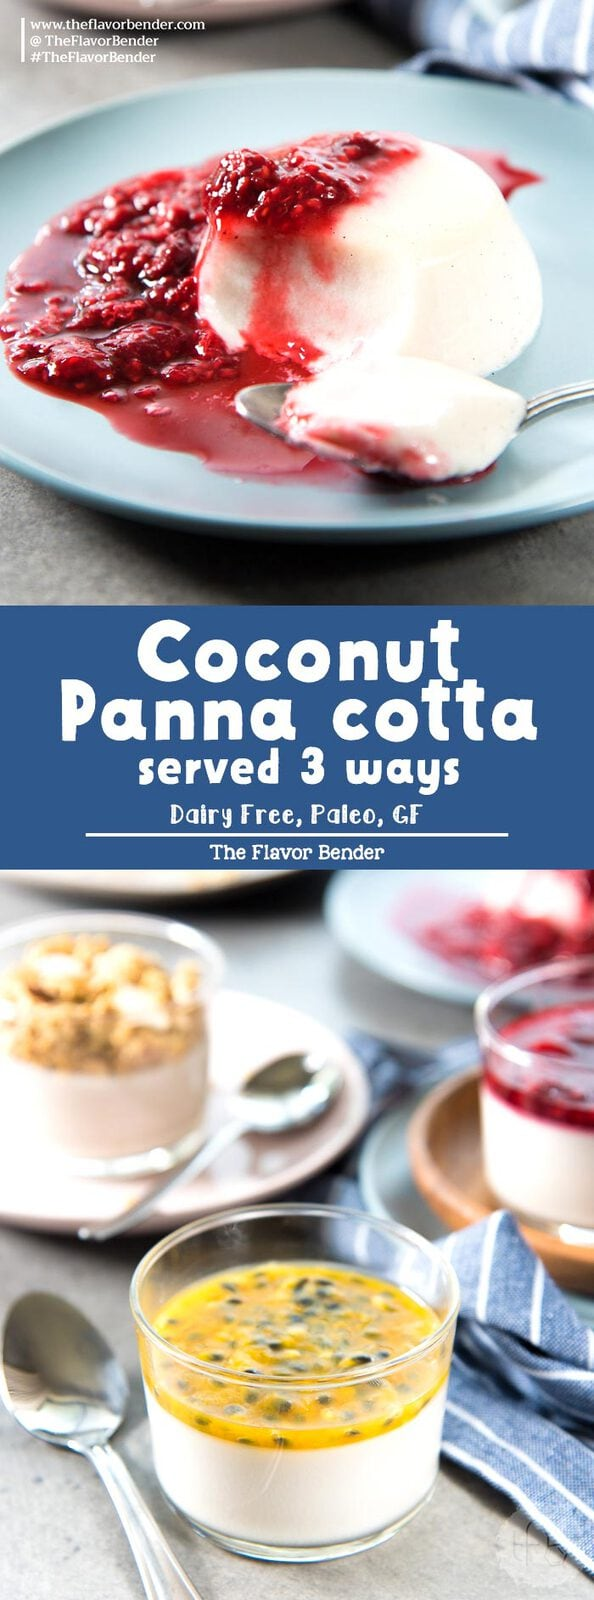 Creamy Coconut Panna cotta that is easy to make and is PALEO and DAIRY FREE (and Vegan friendly). A healthy dessert with THREE serving options that can double as breakfast as well!#EasyDessert #CoconutDesserts #PaleoRecipes #DessertForBreakfast